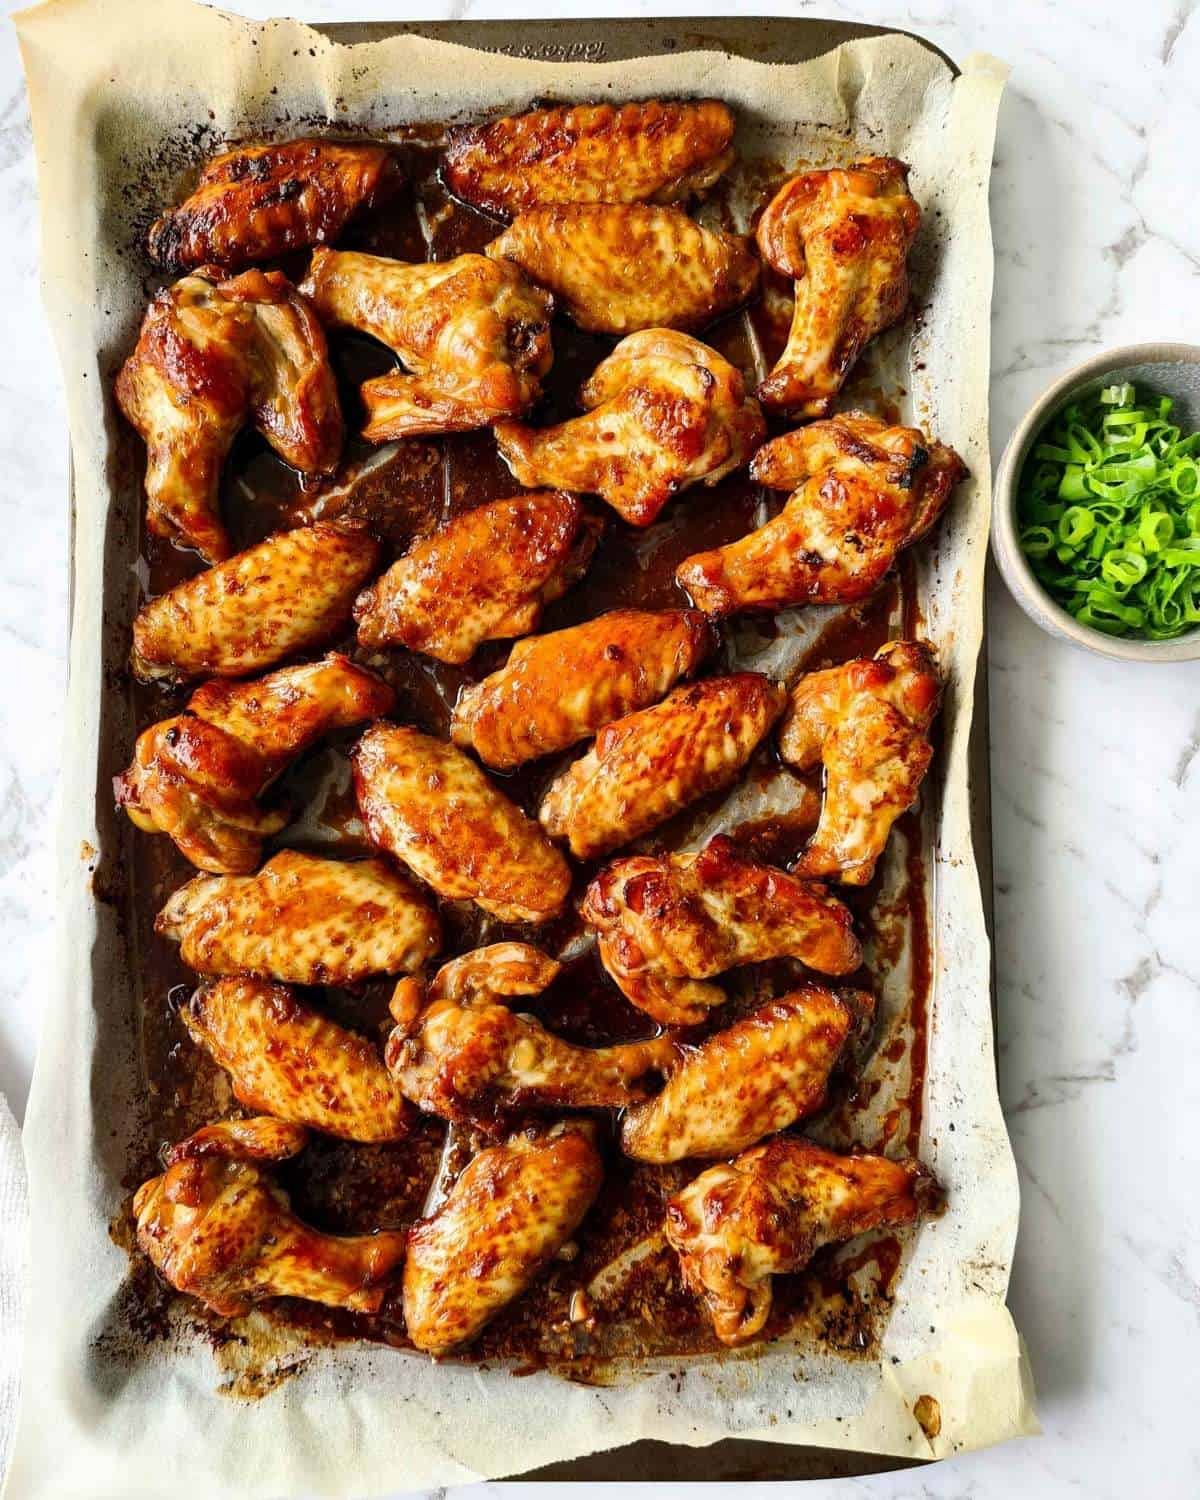 Freshly baked soy chicken wings on a lined baking tray